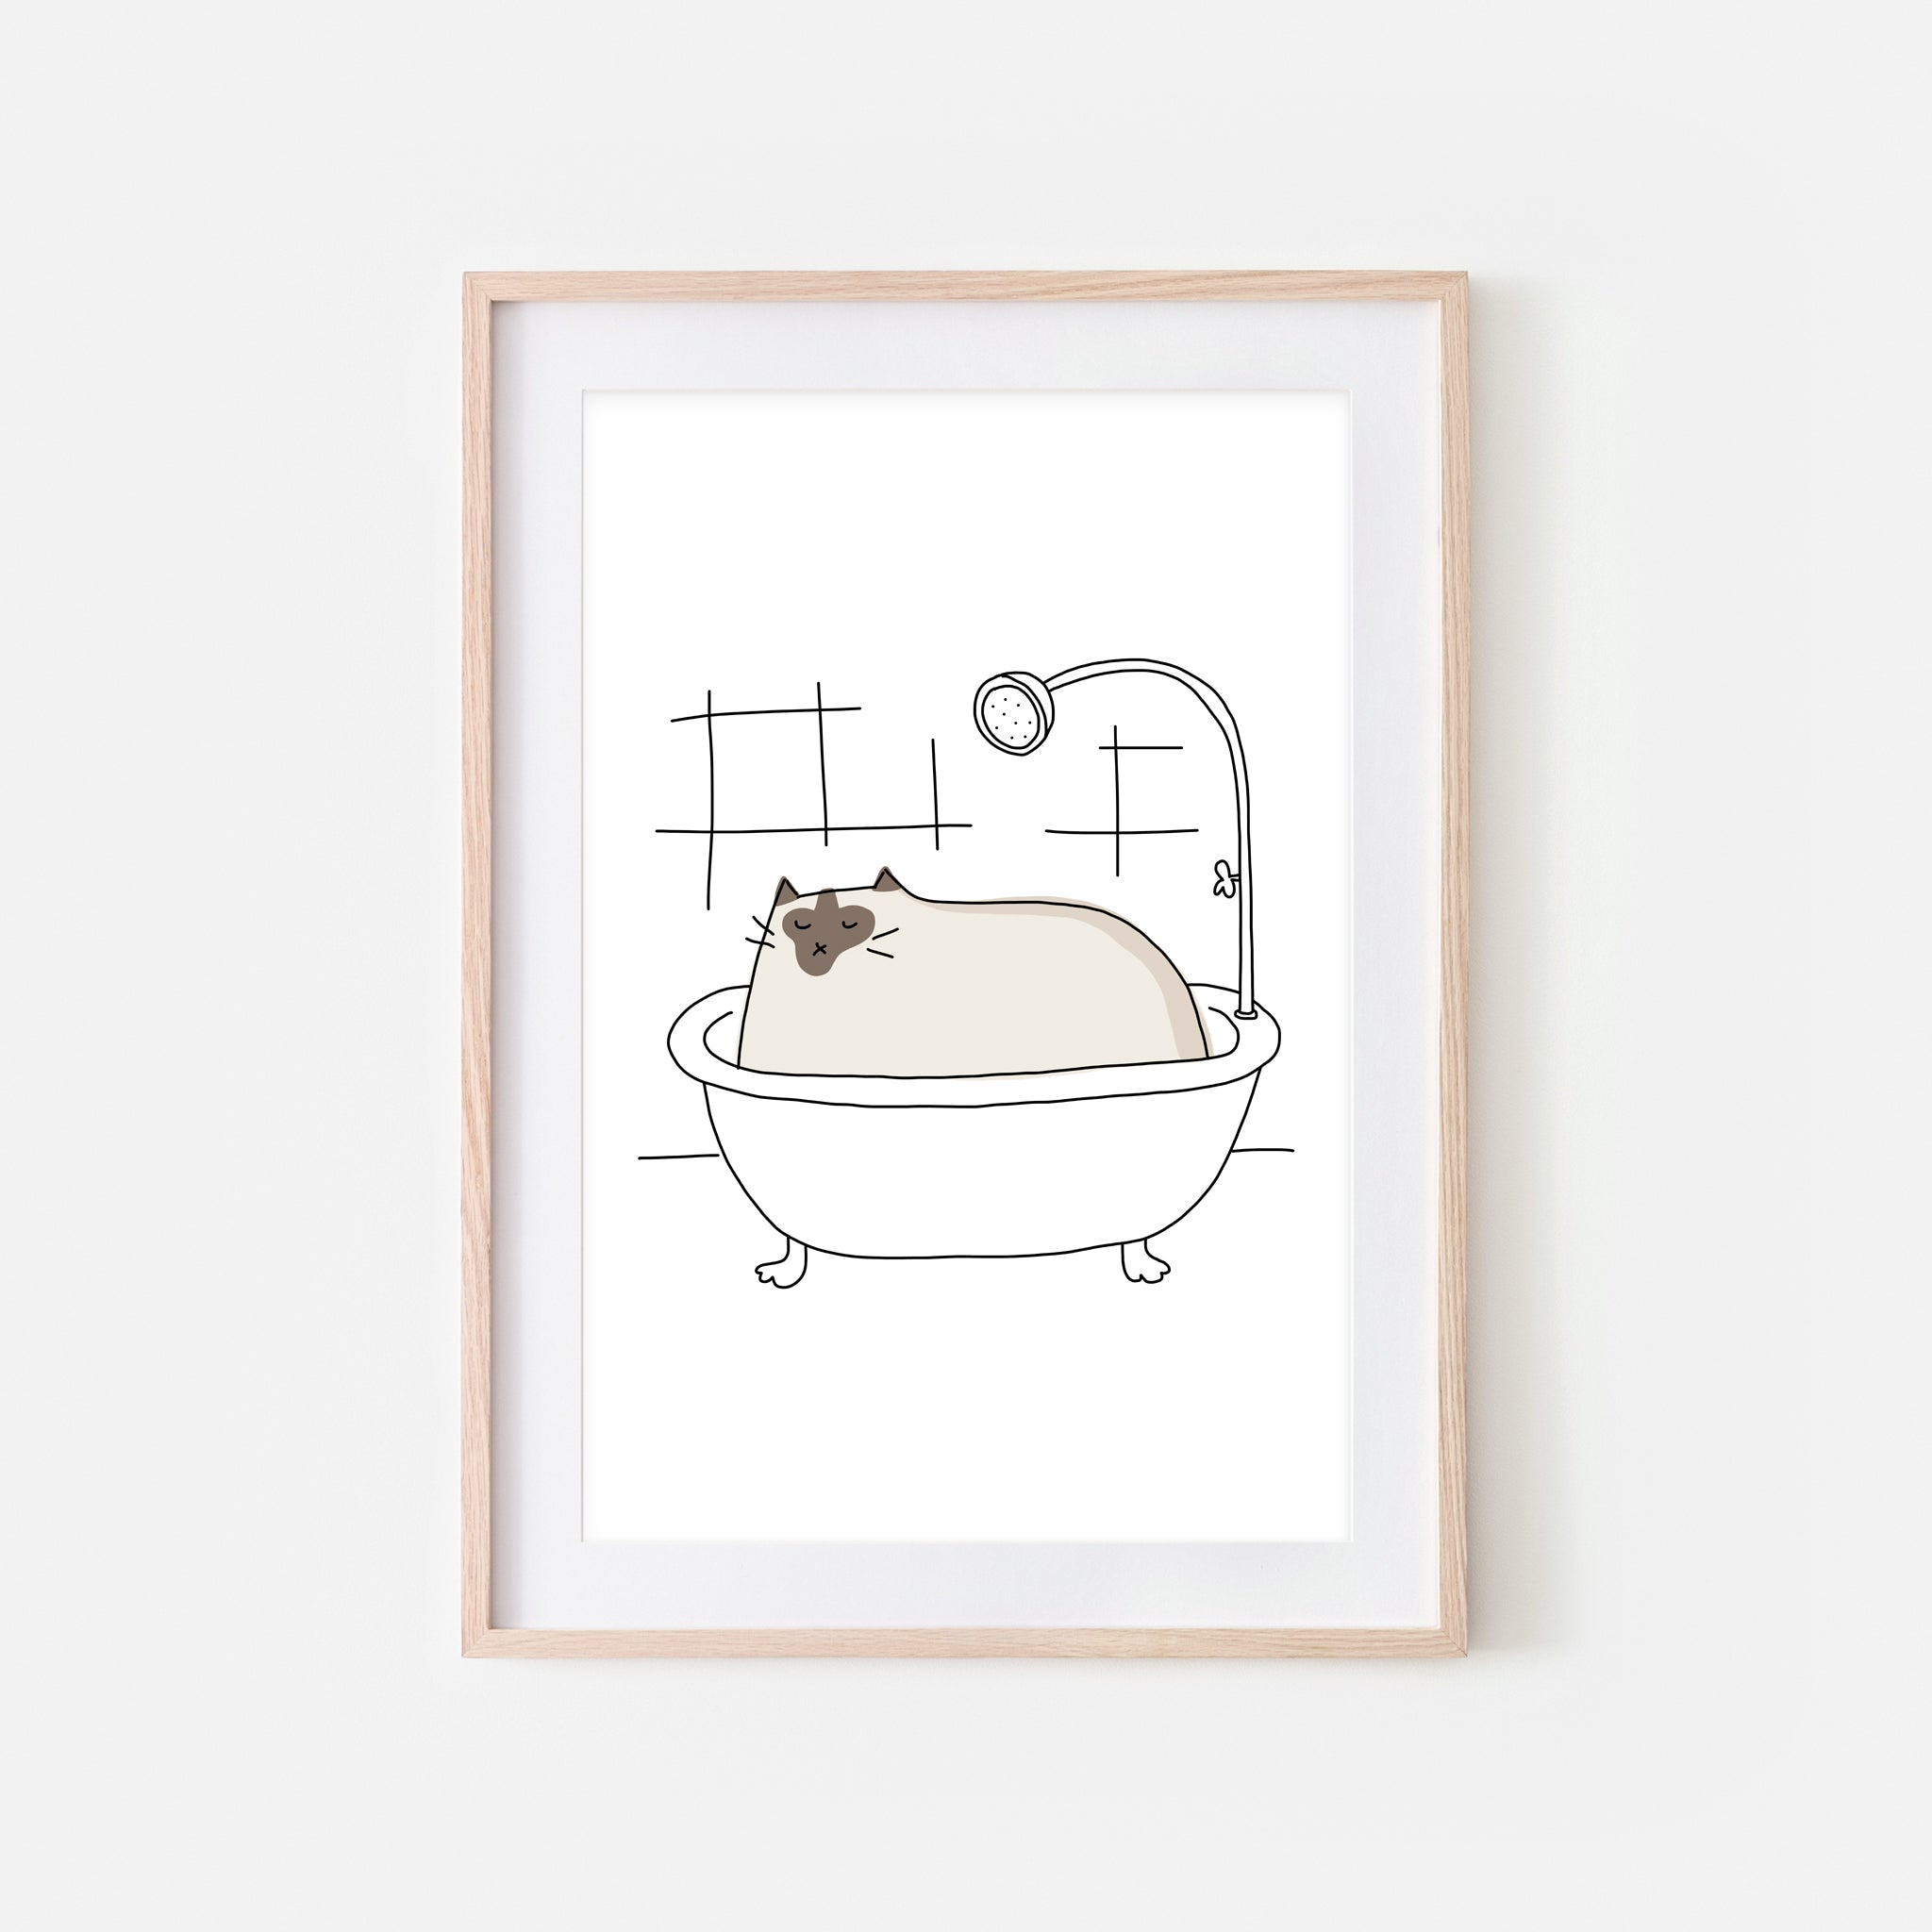 Siamese Cat in Bath Wall Art - Funny Bathroom Decor - Line Drawing Illustration - Print, Poster or Printable Download